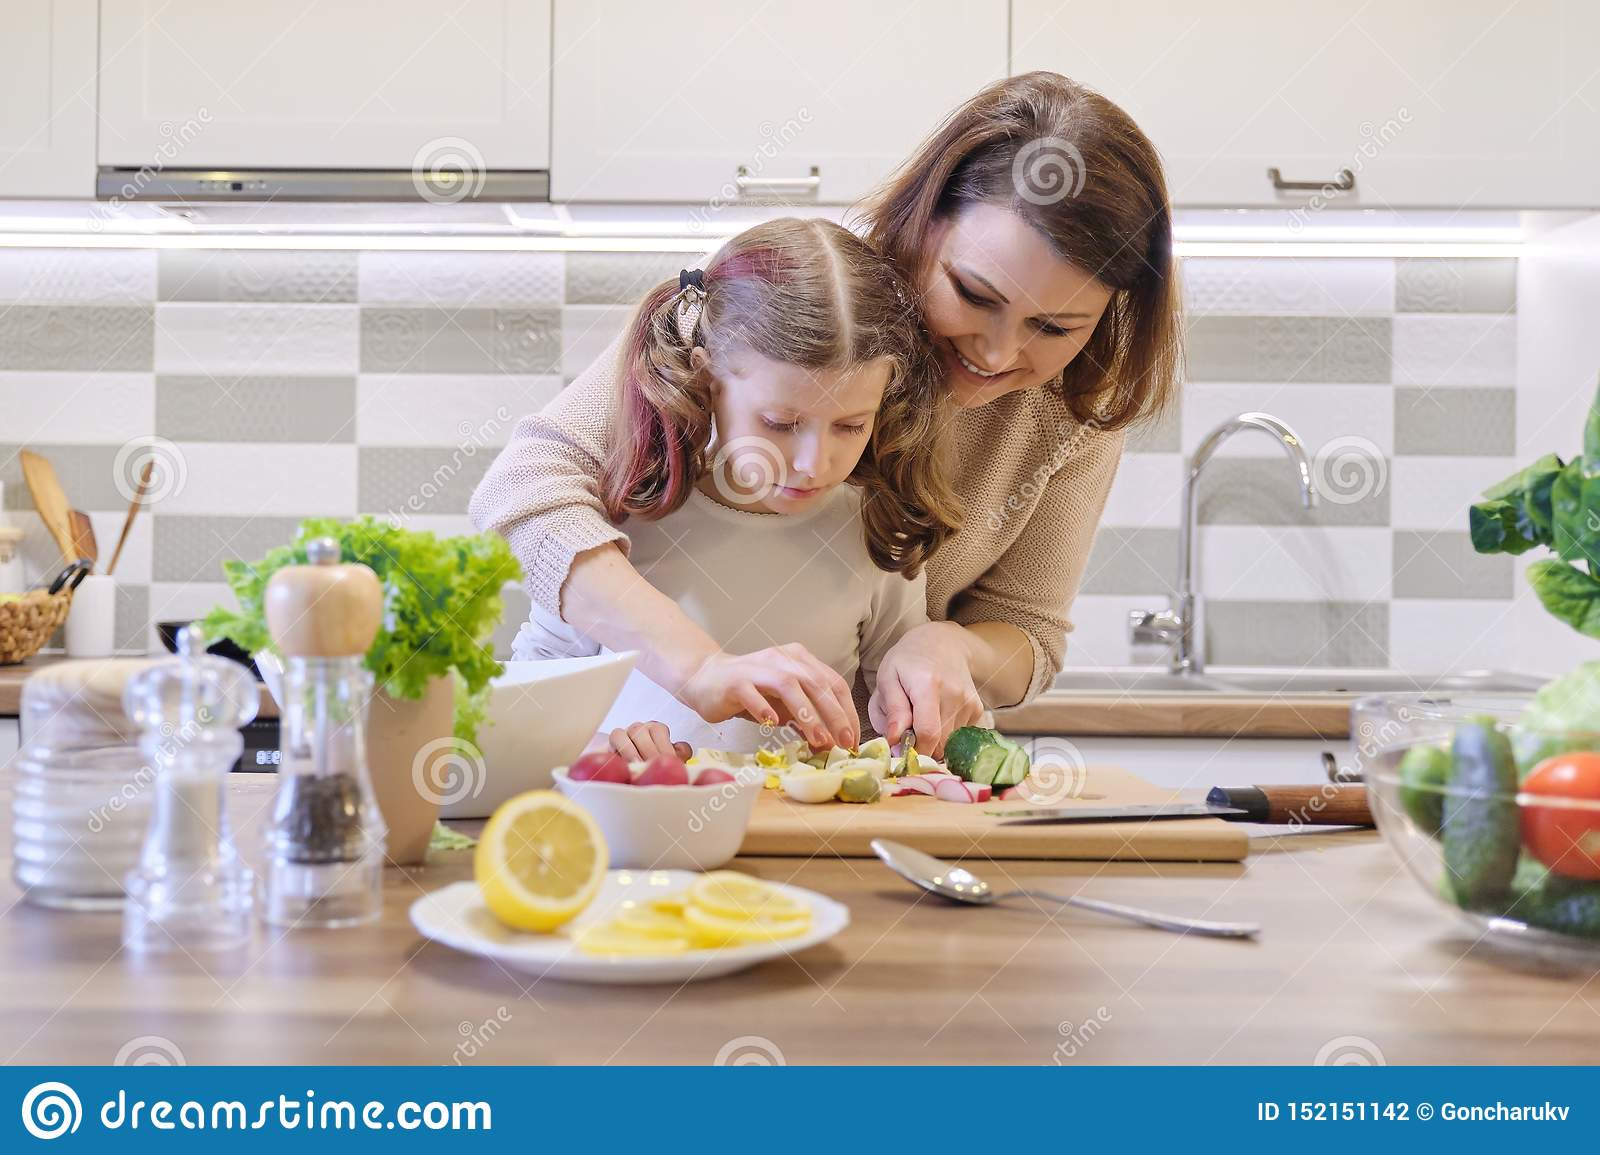 Mother and daughter cooking together in kitchen vegetable salad, parent and child are talking smiling